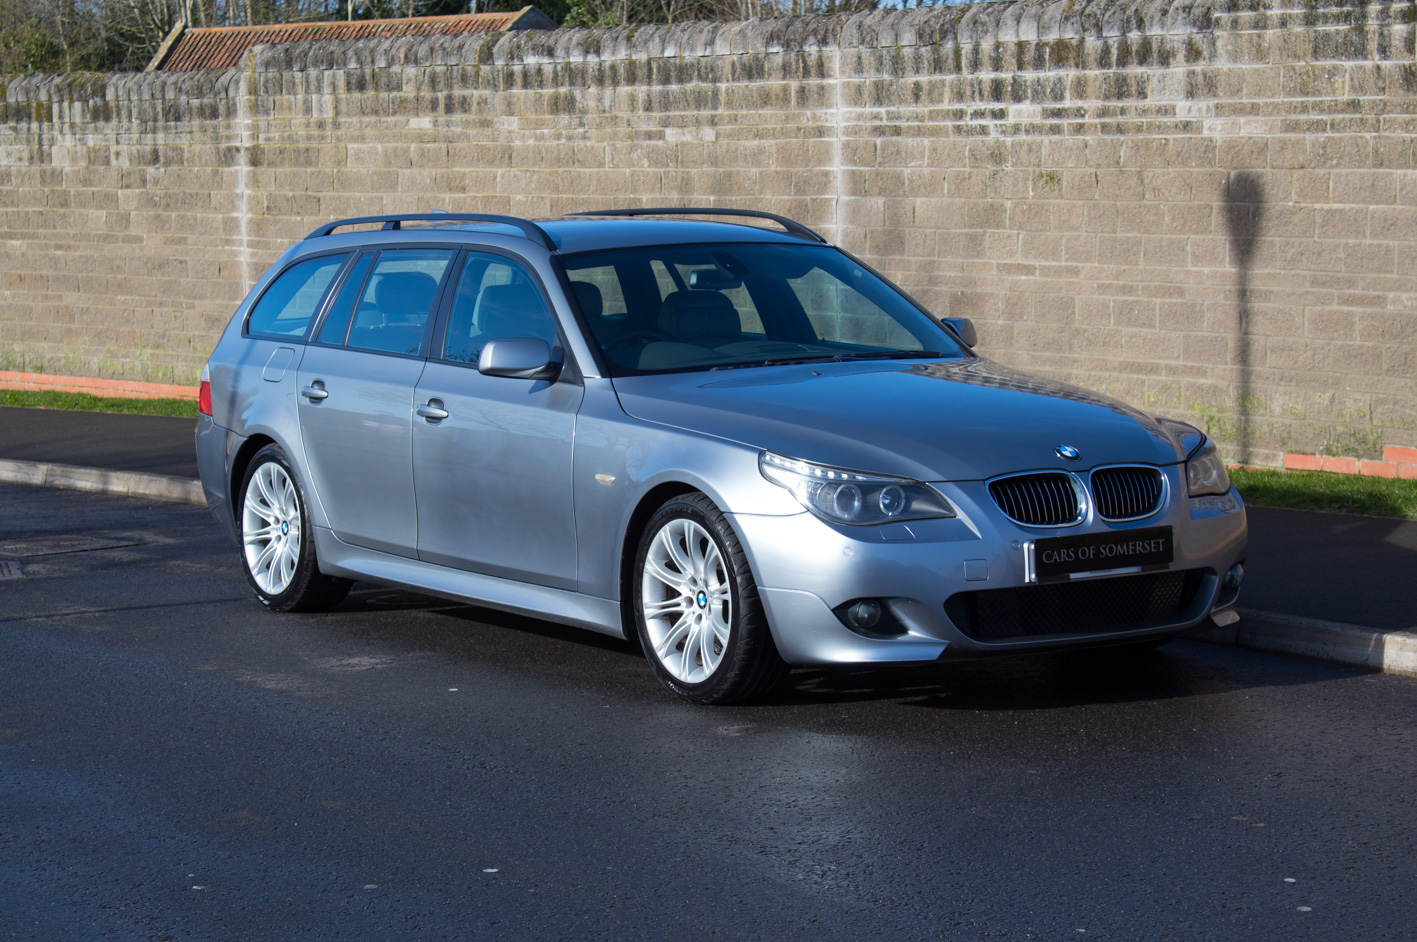 28+ [2005 bmw 530d m sport touring cars of somerset]